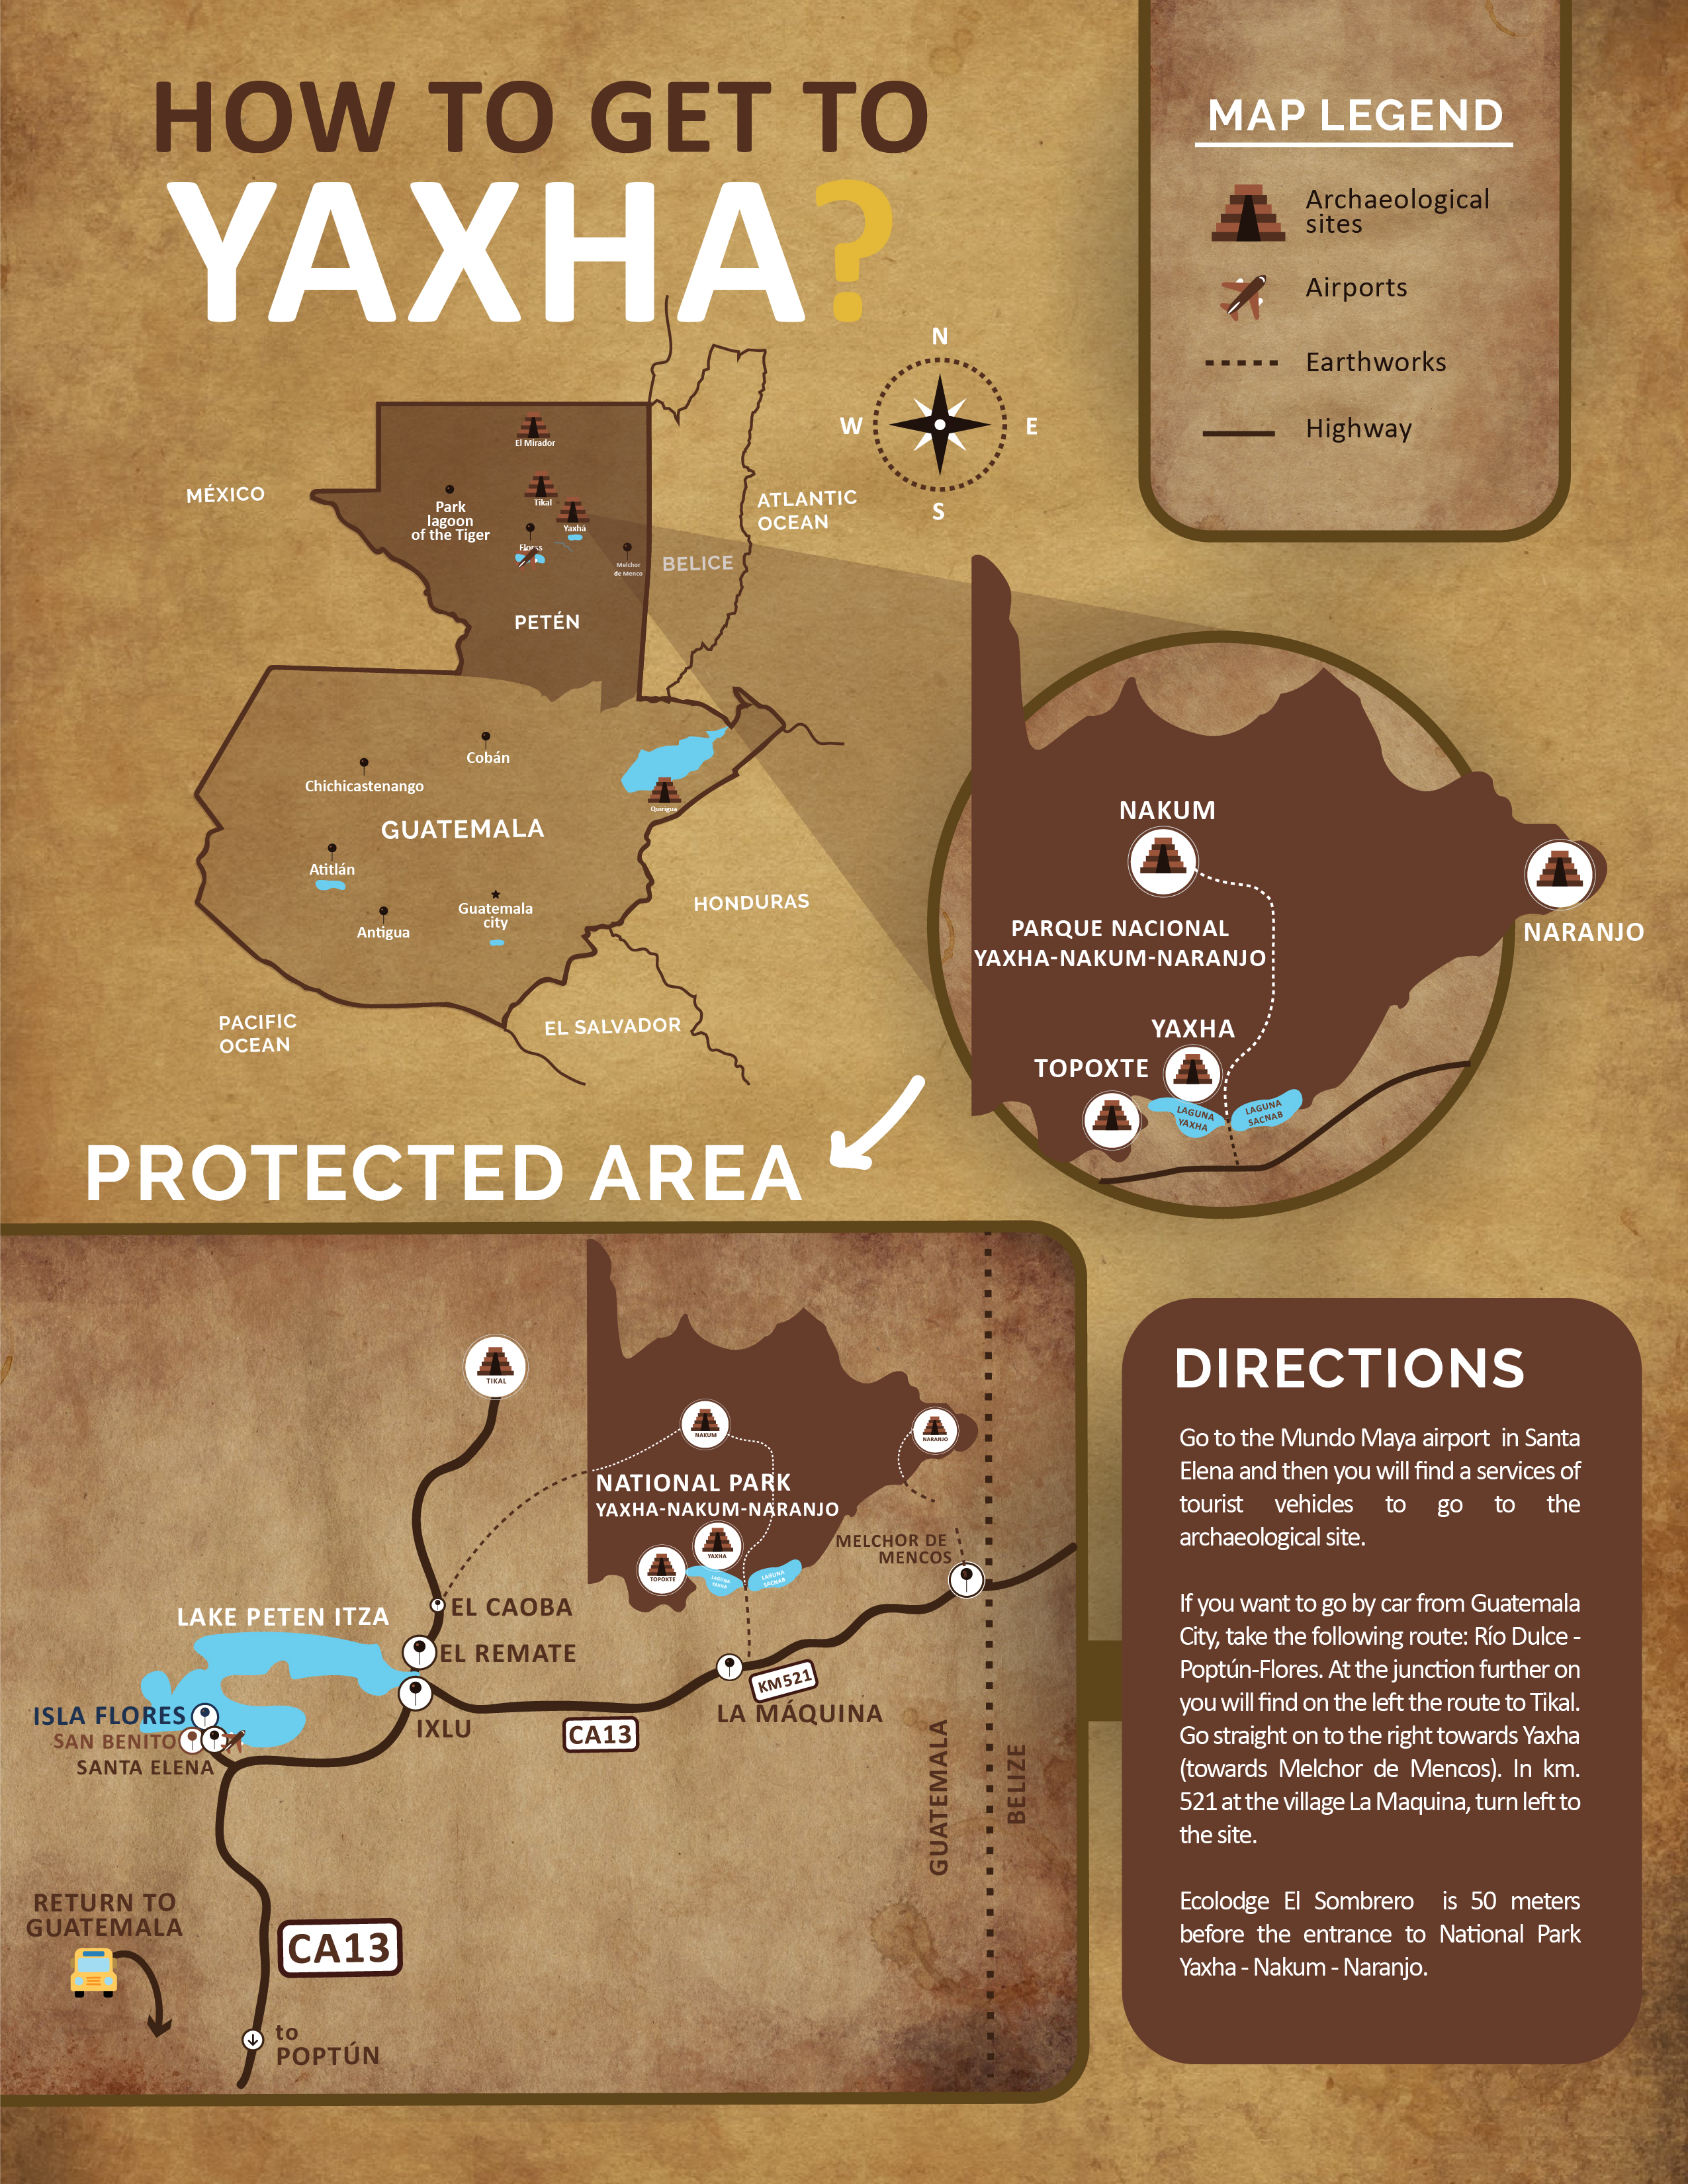 How to get to Yaxha